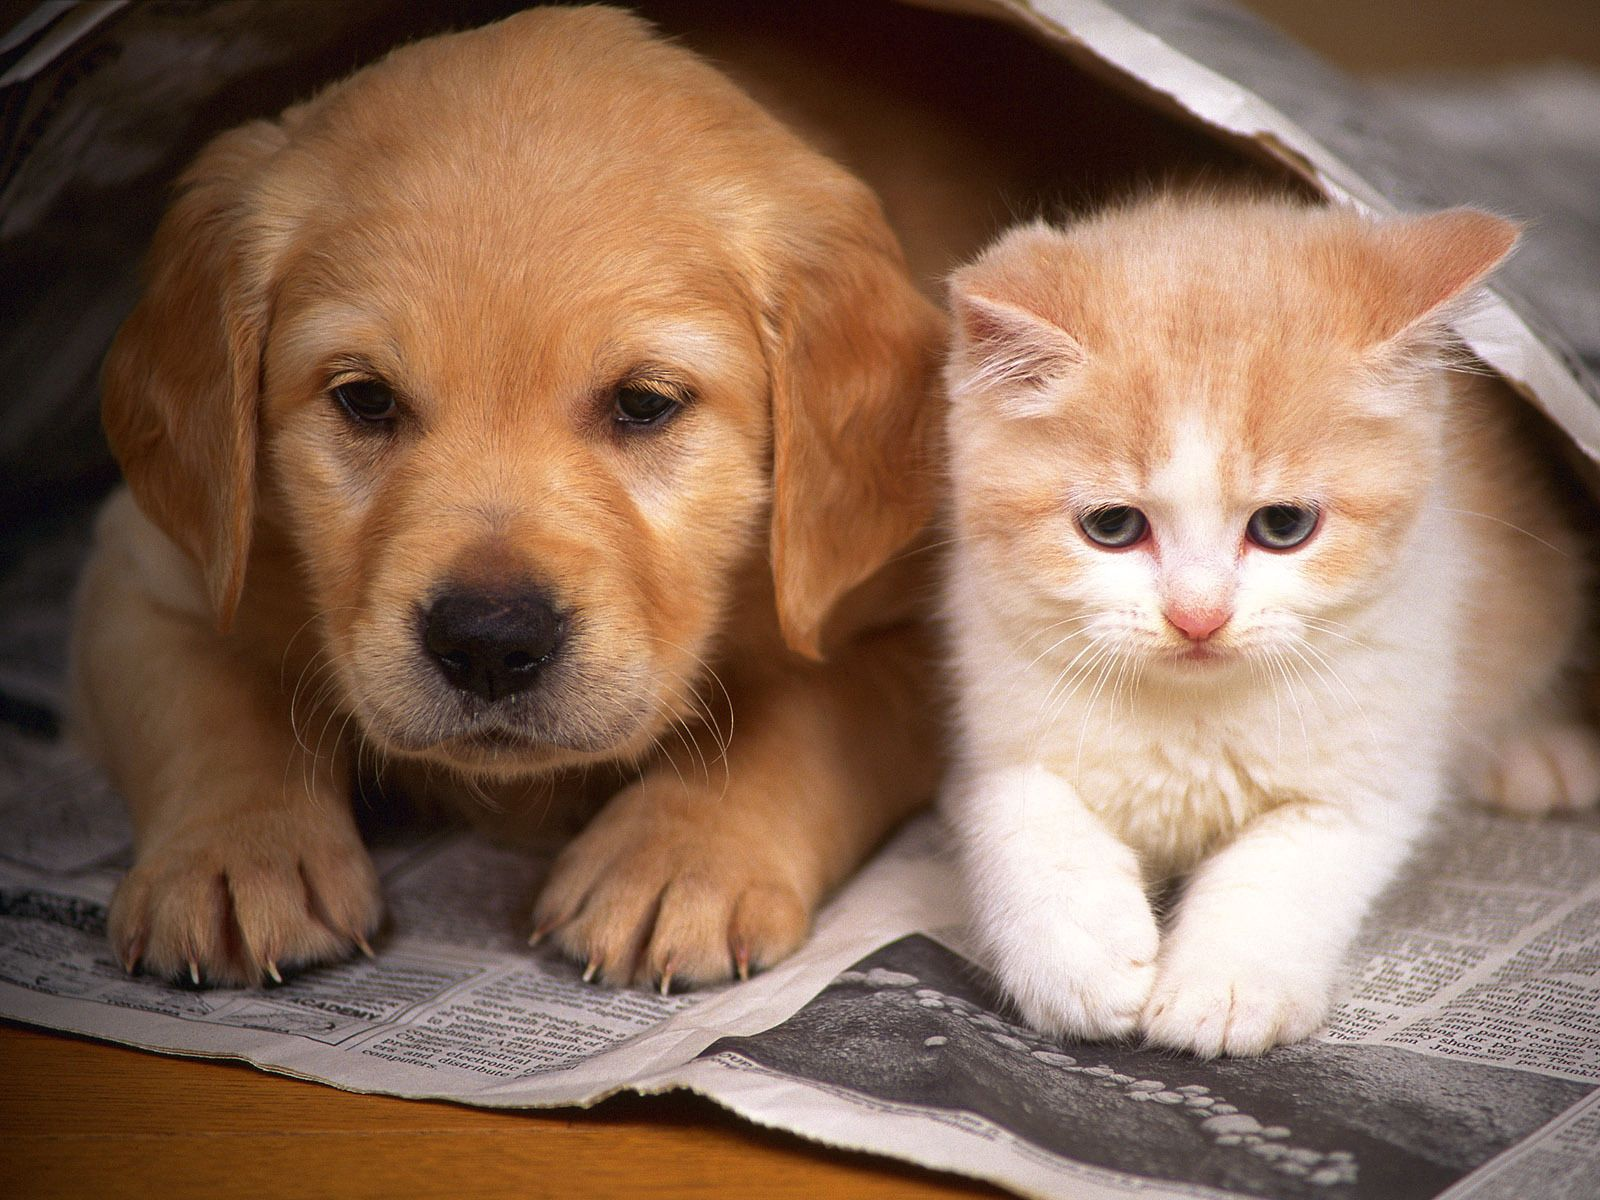 109578 download wallpaper Animals, Friendship, Kitty, Kitten, Couple, Pair, Hide, Puppy, Newspaper screensavers and pictures for free